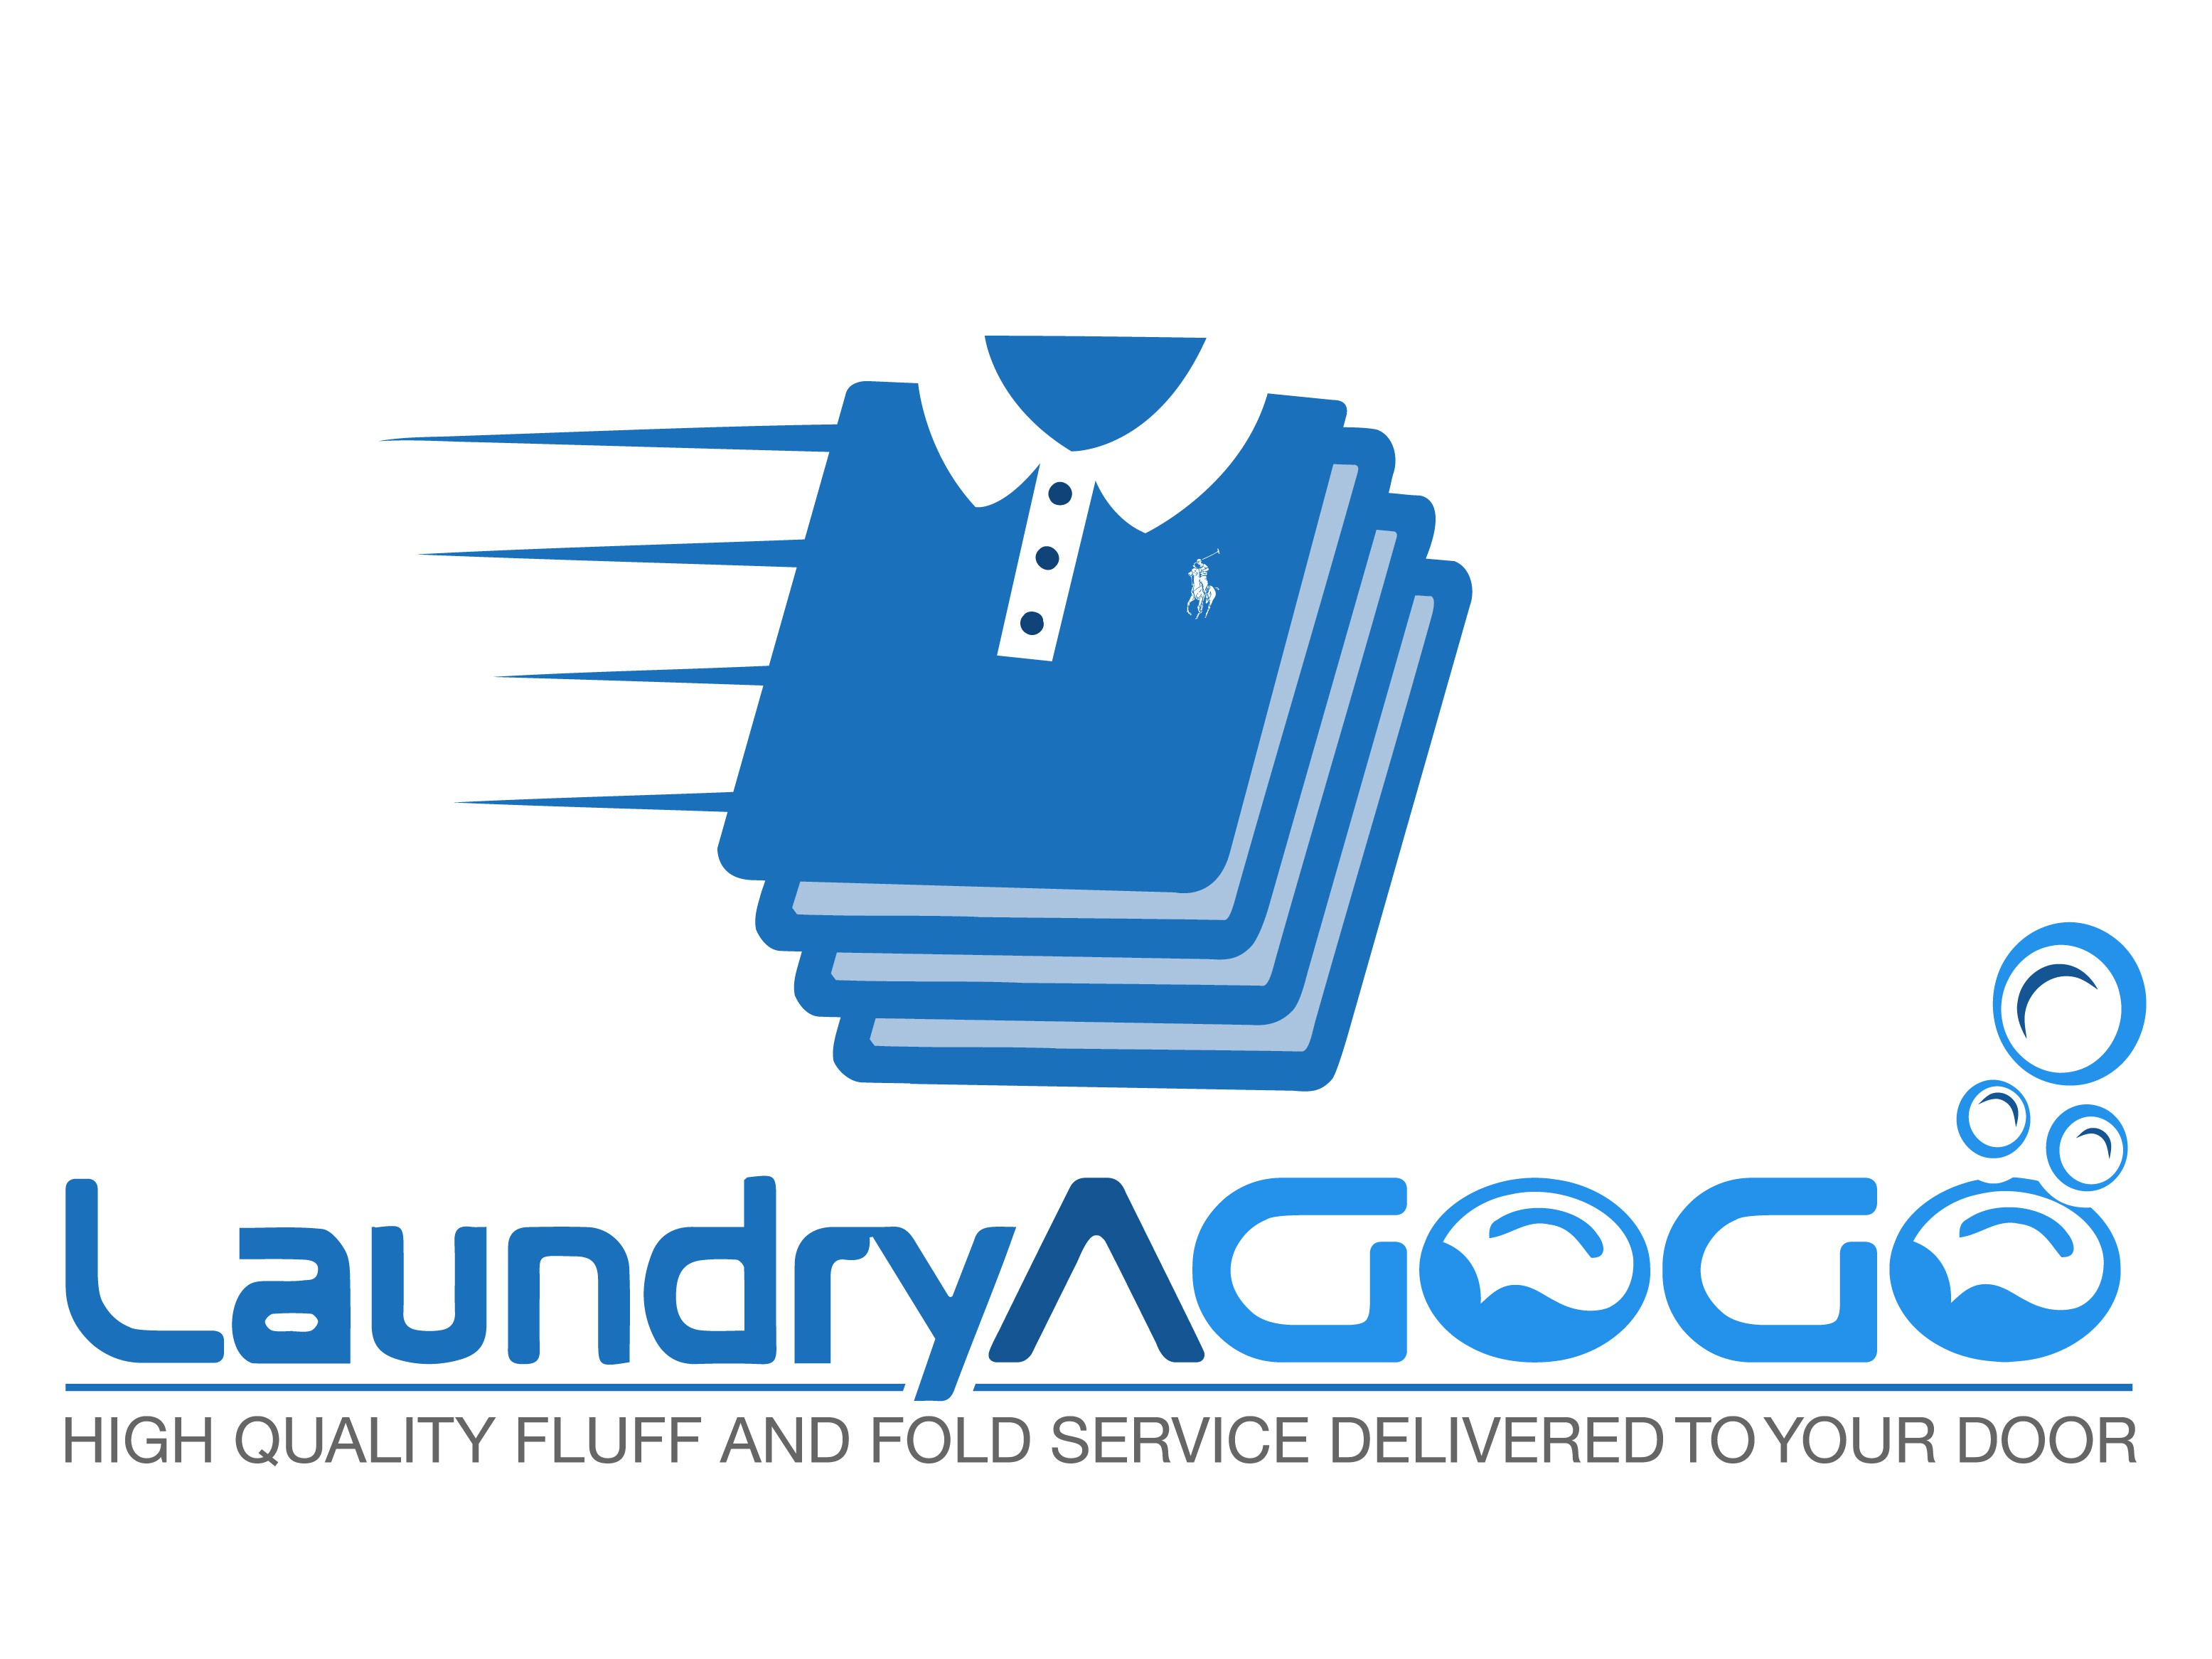 Laundryagogo - a pick up and delivery service for spring fresh quality fluff and fold service